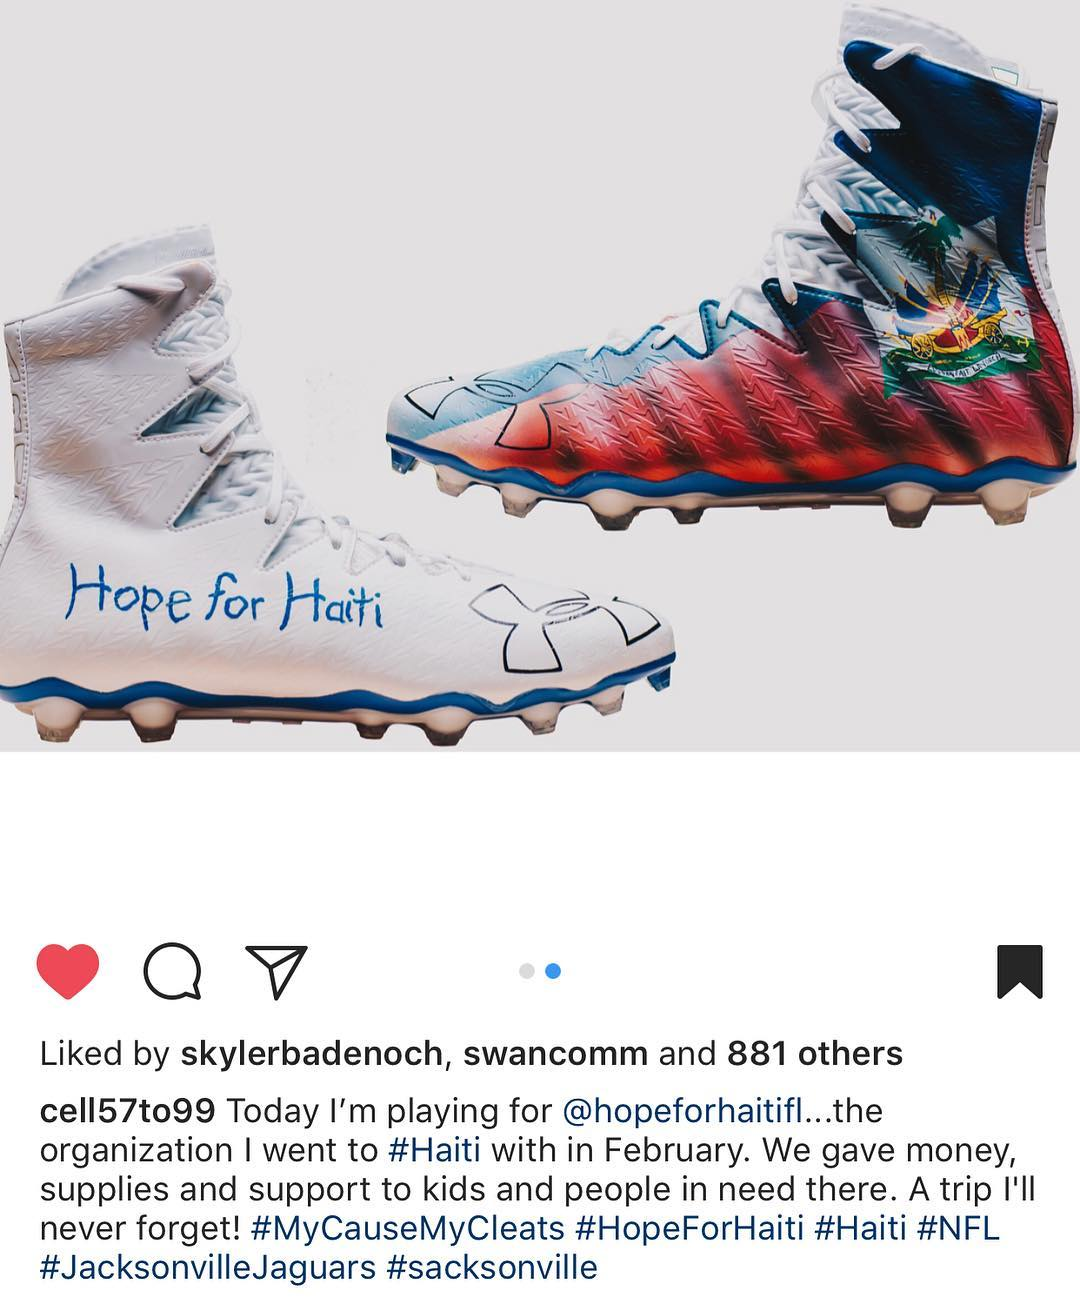 Good luck today @cell57to99 and thank you, #mesianpil for your continued support! #haiti #hopeforhaiti @jaguars @nfl